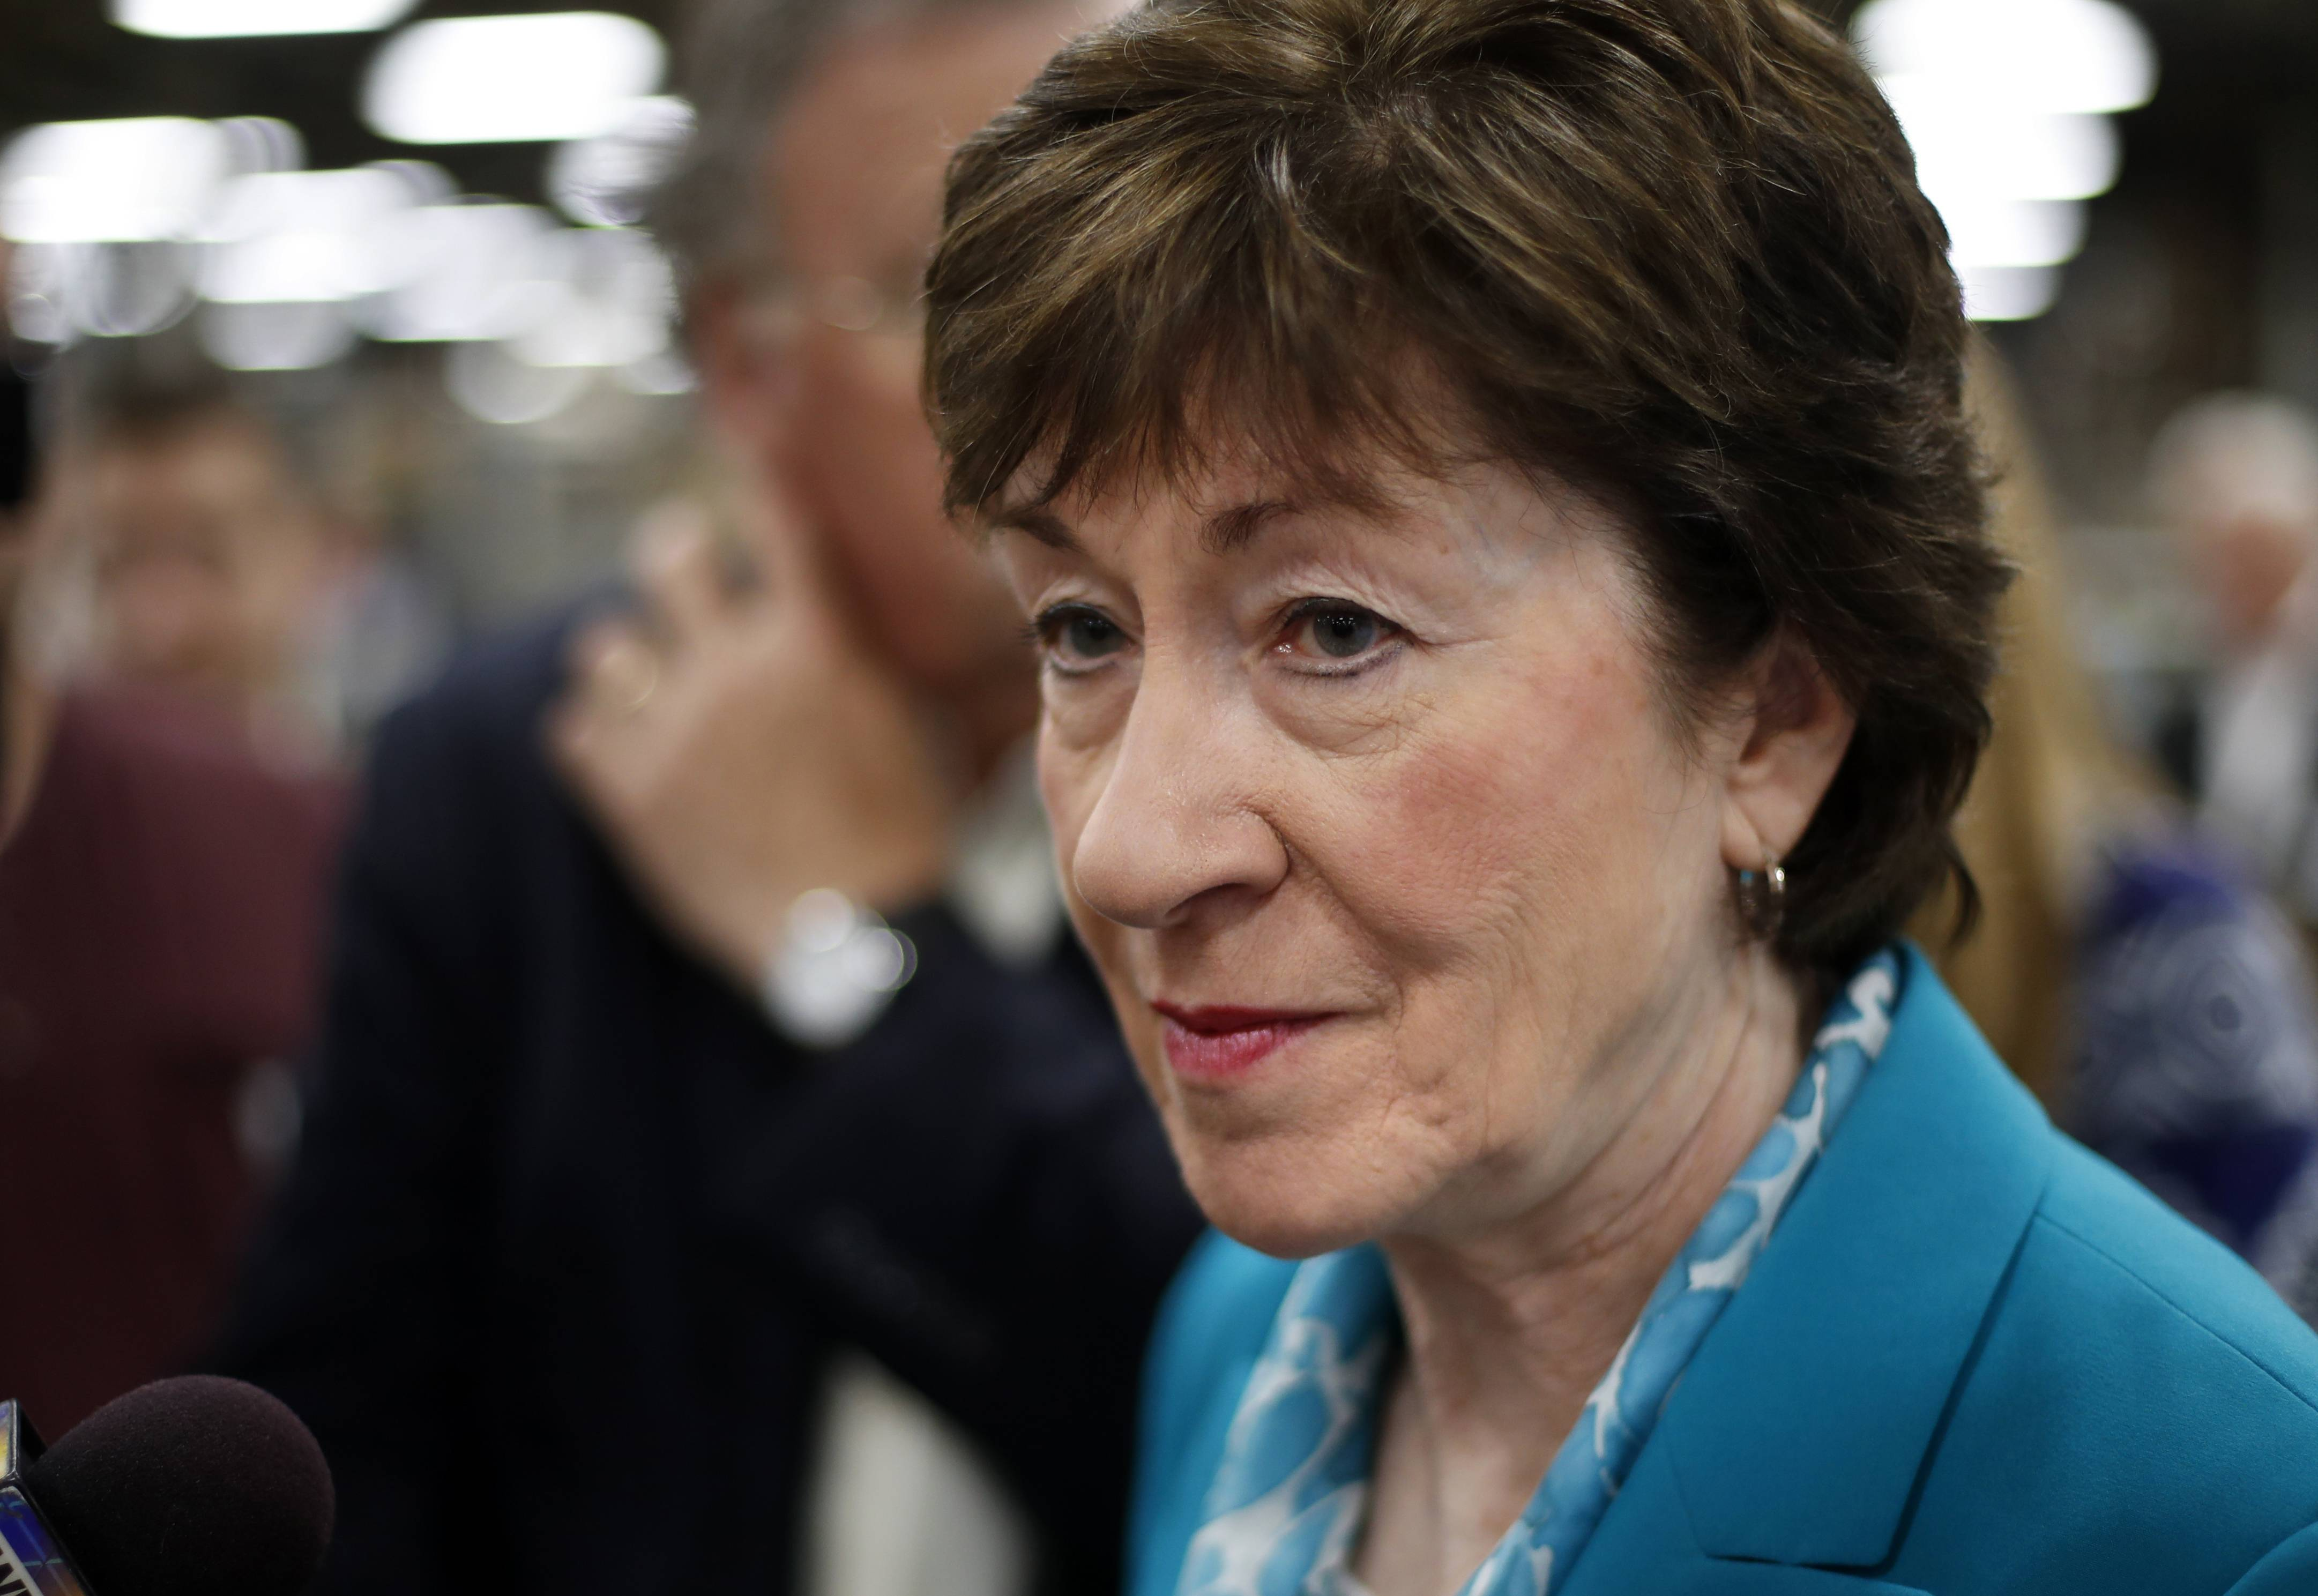 Sen. Susan Collins, a Maine Republican, joined a small but decisive cluster of GOP senators in opposing the push to pass another attempt at repealing the Affordable Care Act.